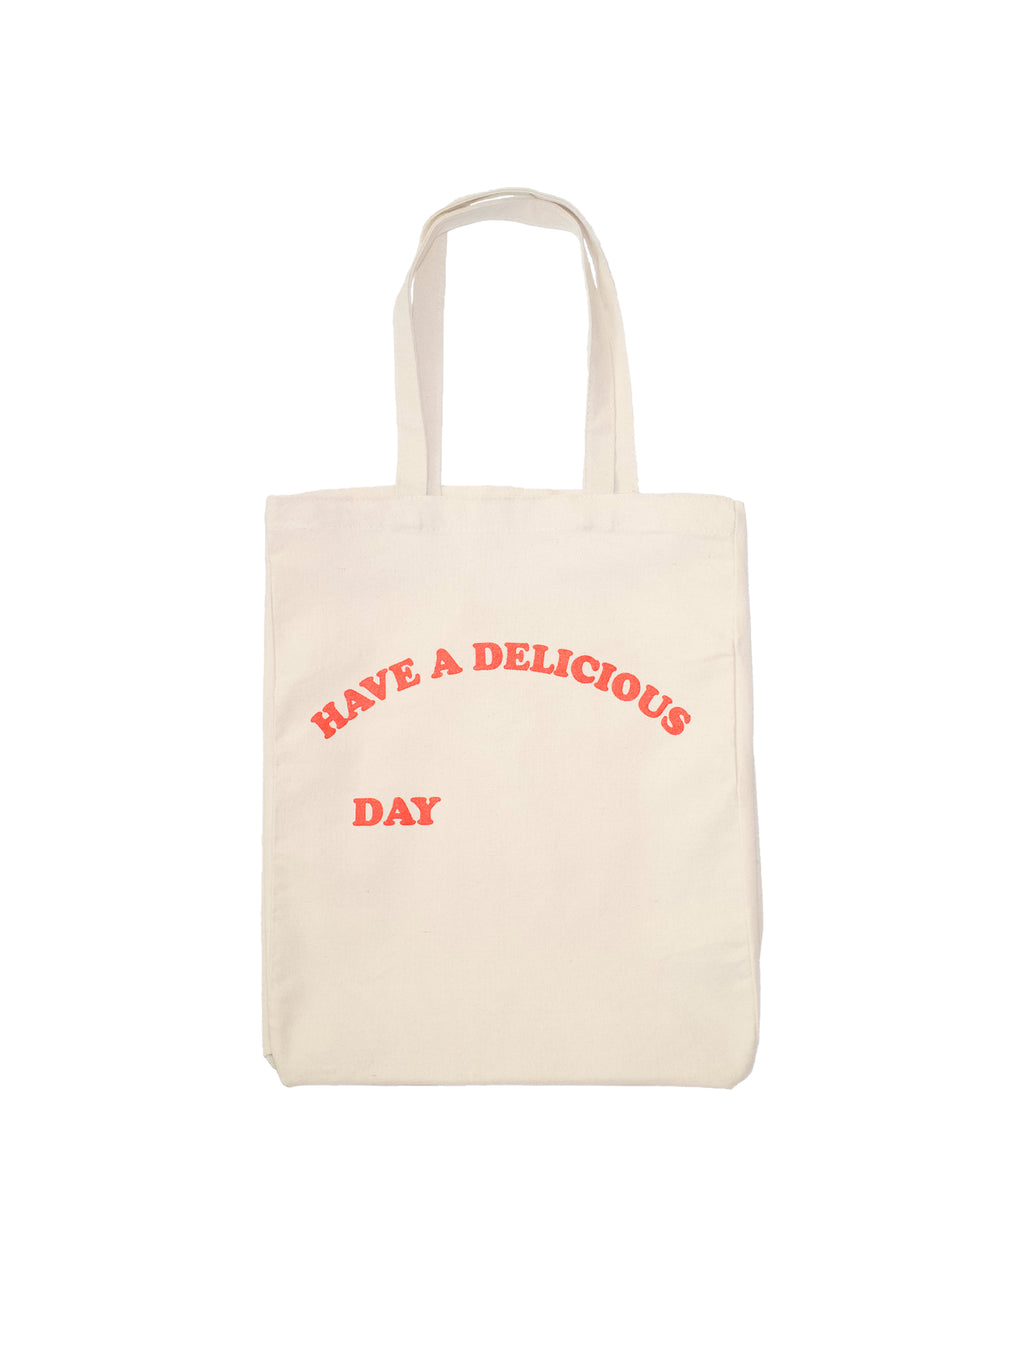 Have A Delicious Day Tote